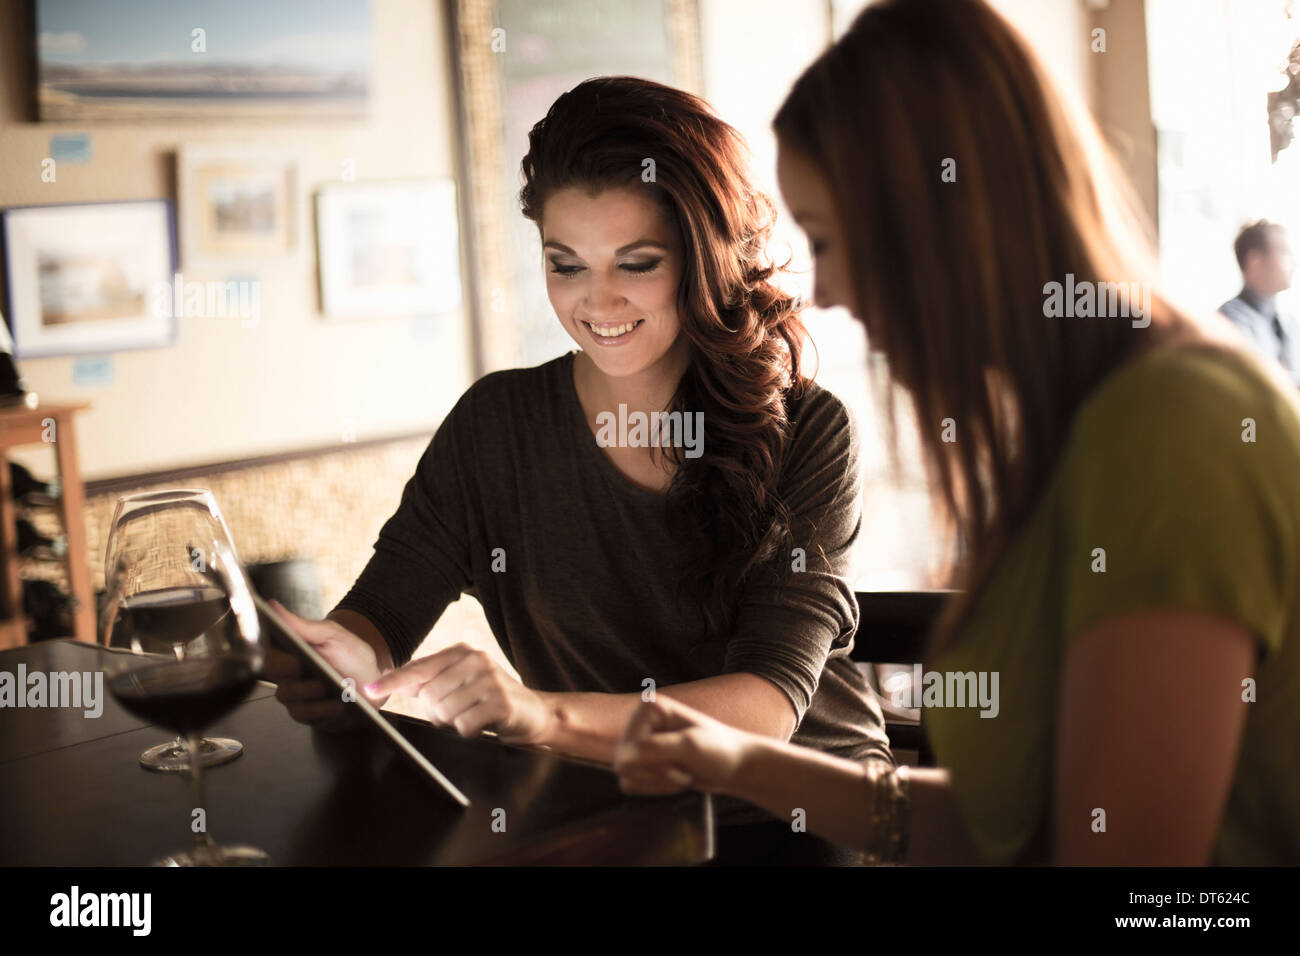 Businesswomen looking at digital tablet in a wine bar - Stock Image